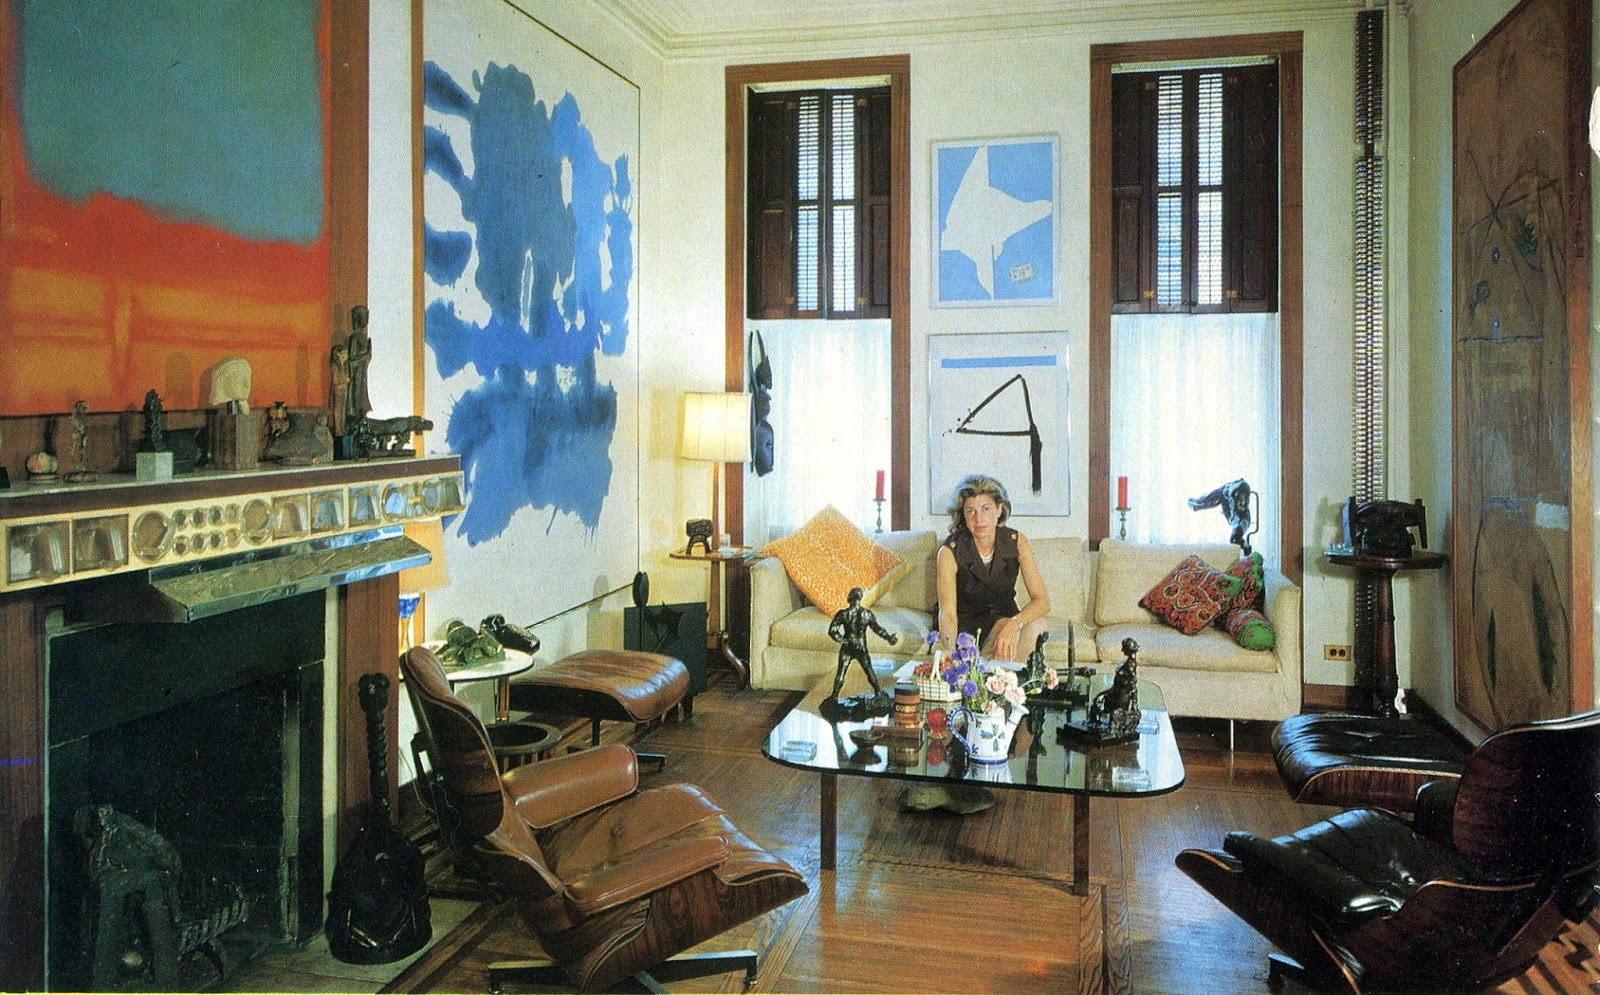 Le monde de Kitchi: Great Women # 35: Helen Frankenthaler